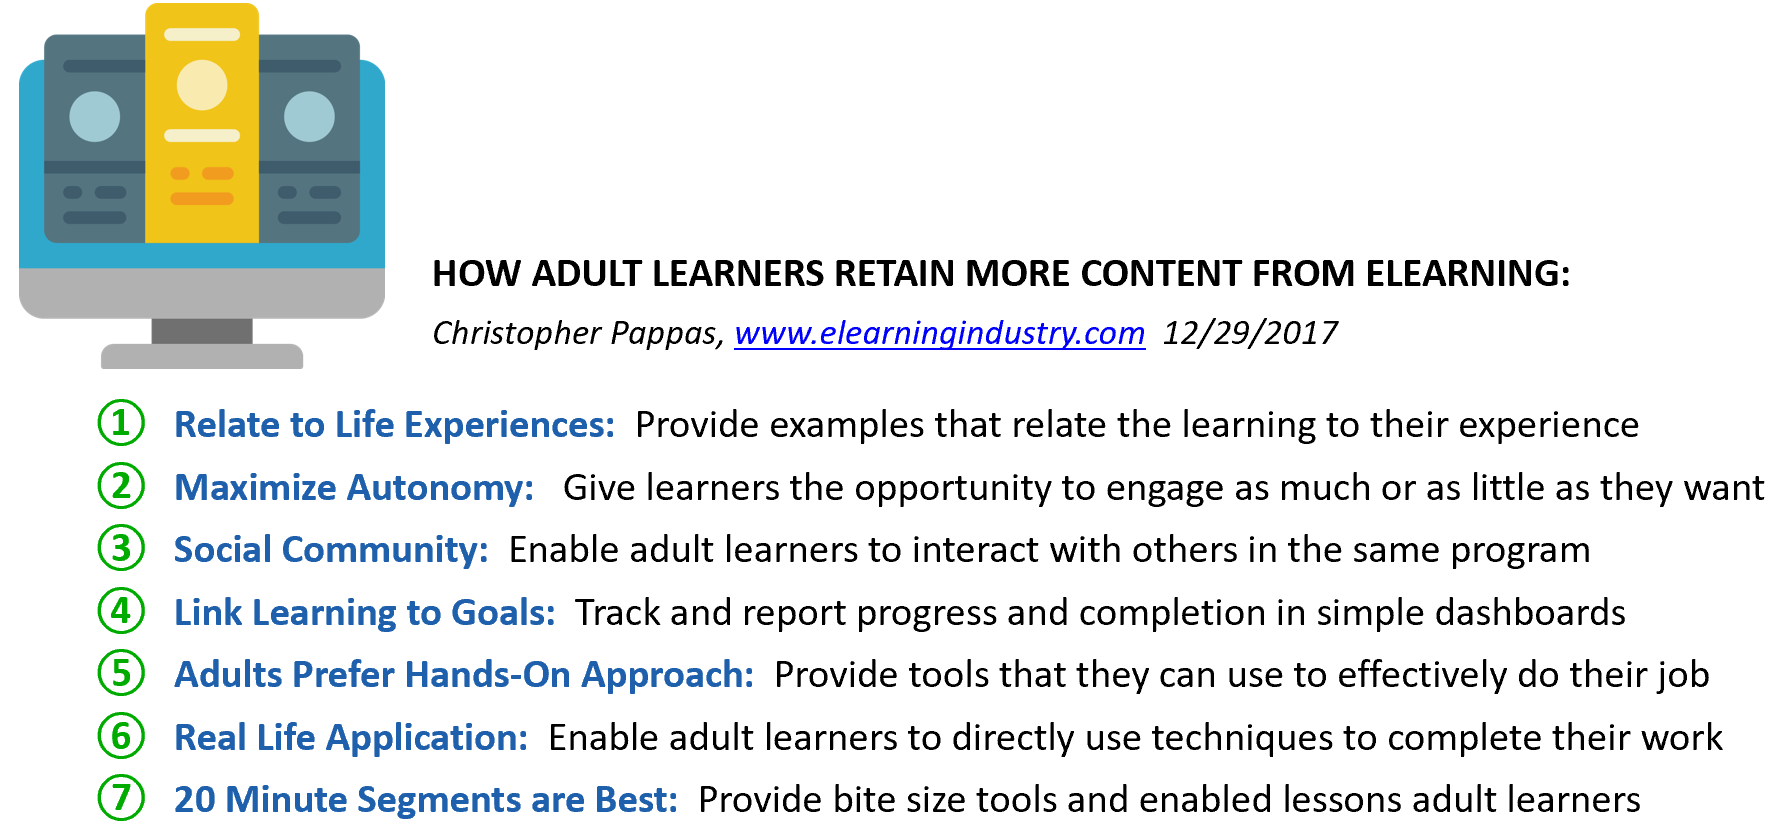 Content from Elearning